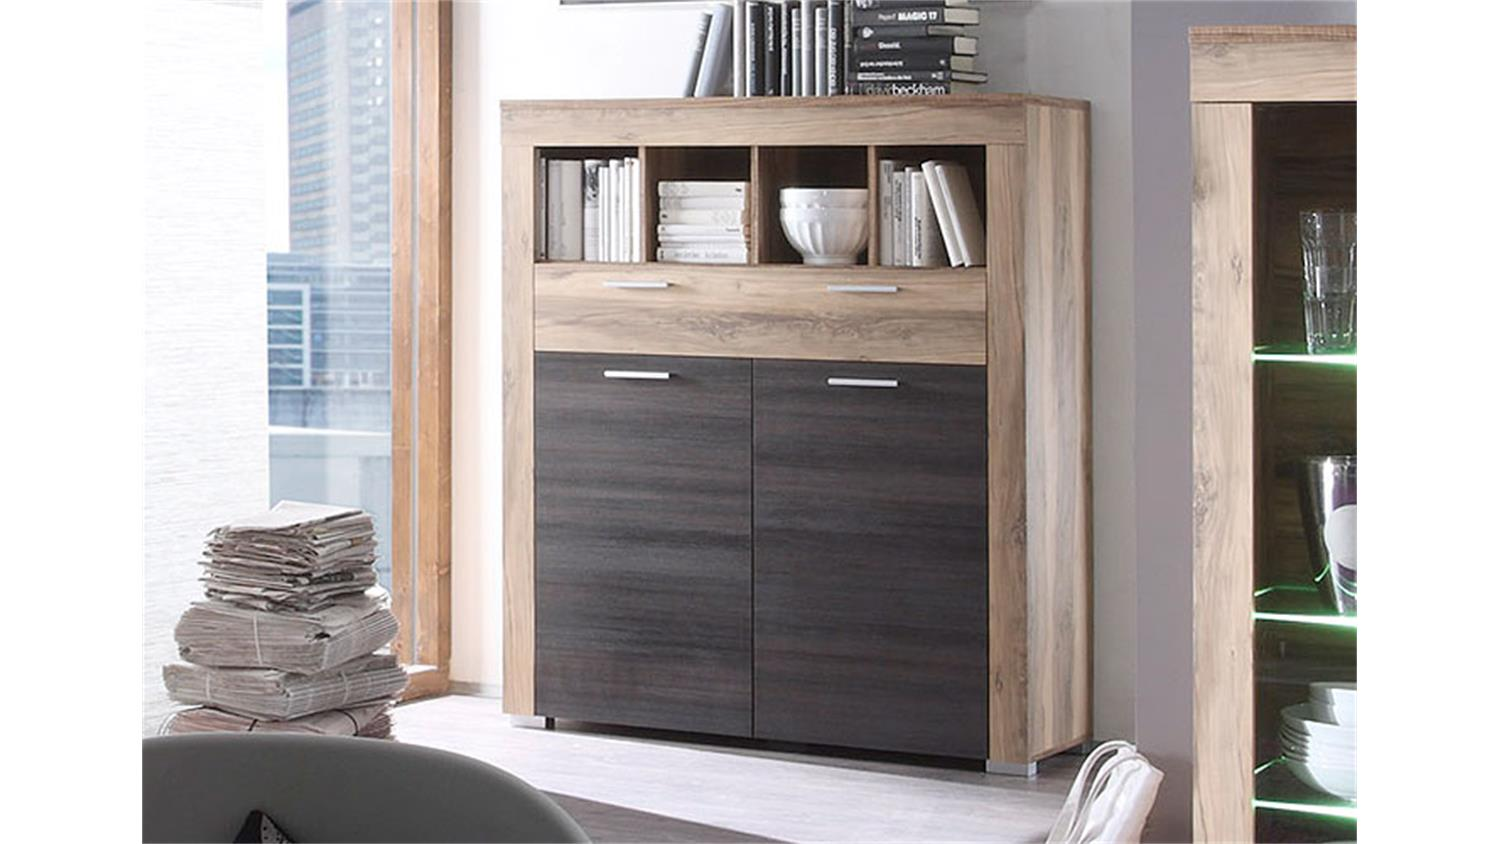 nussbaumsatin touchwood die neuesten innenarchitekturideen. Black Bedroom Furniture Sets. Home Design Ideas